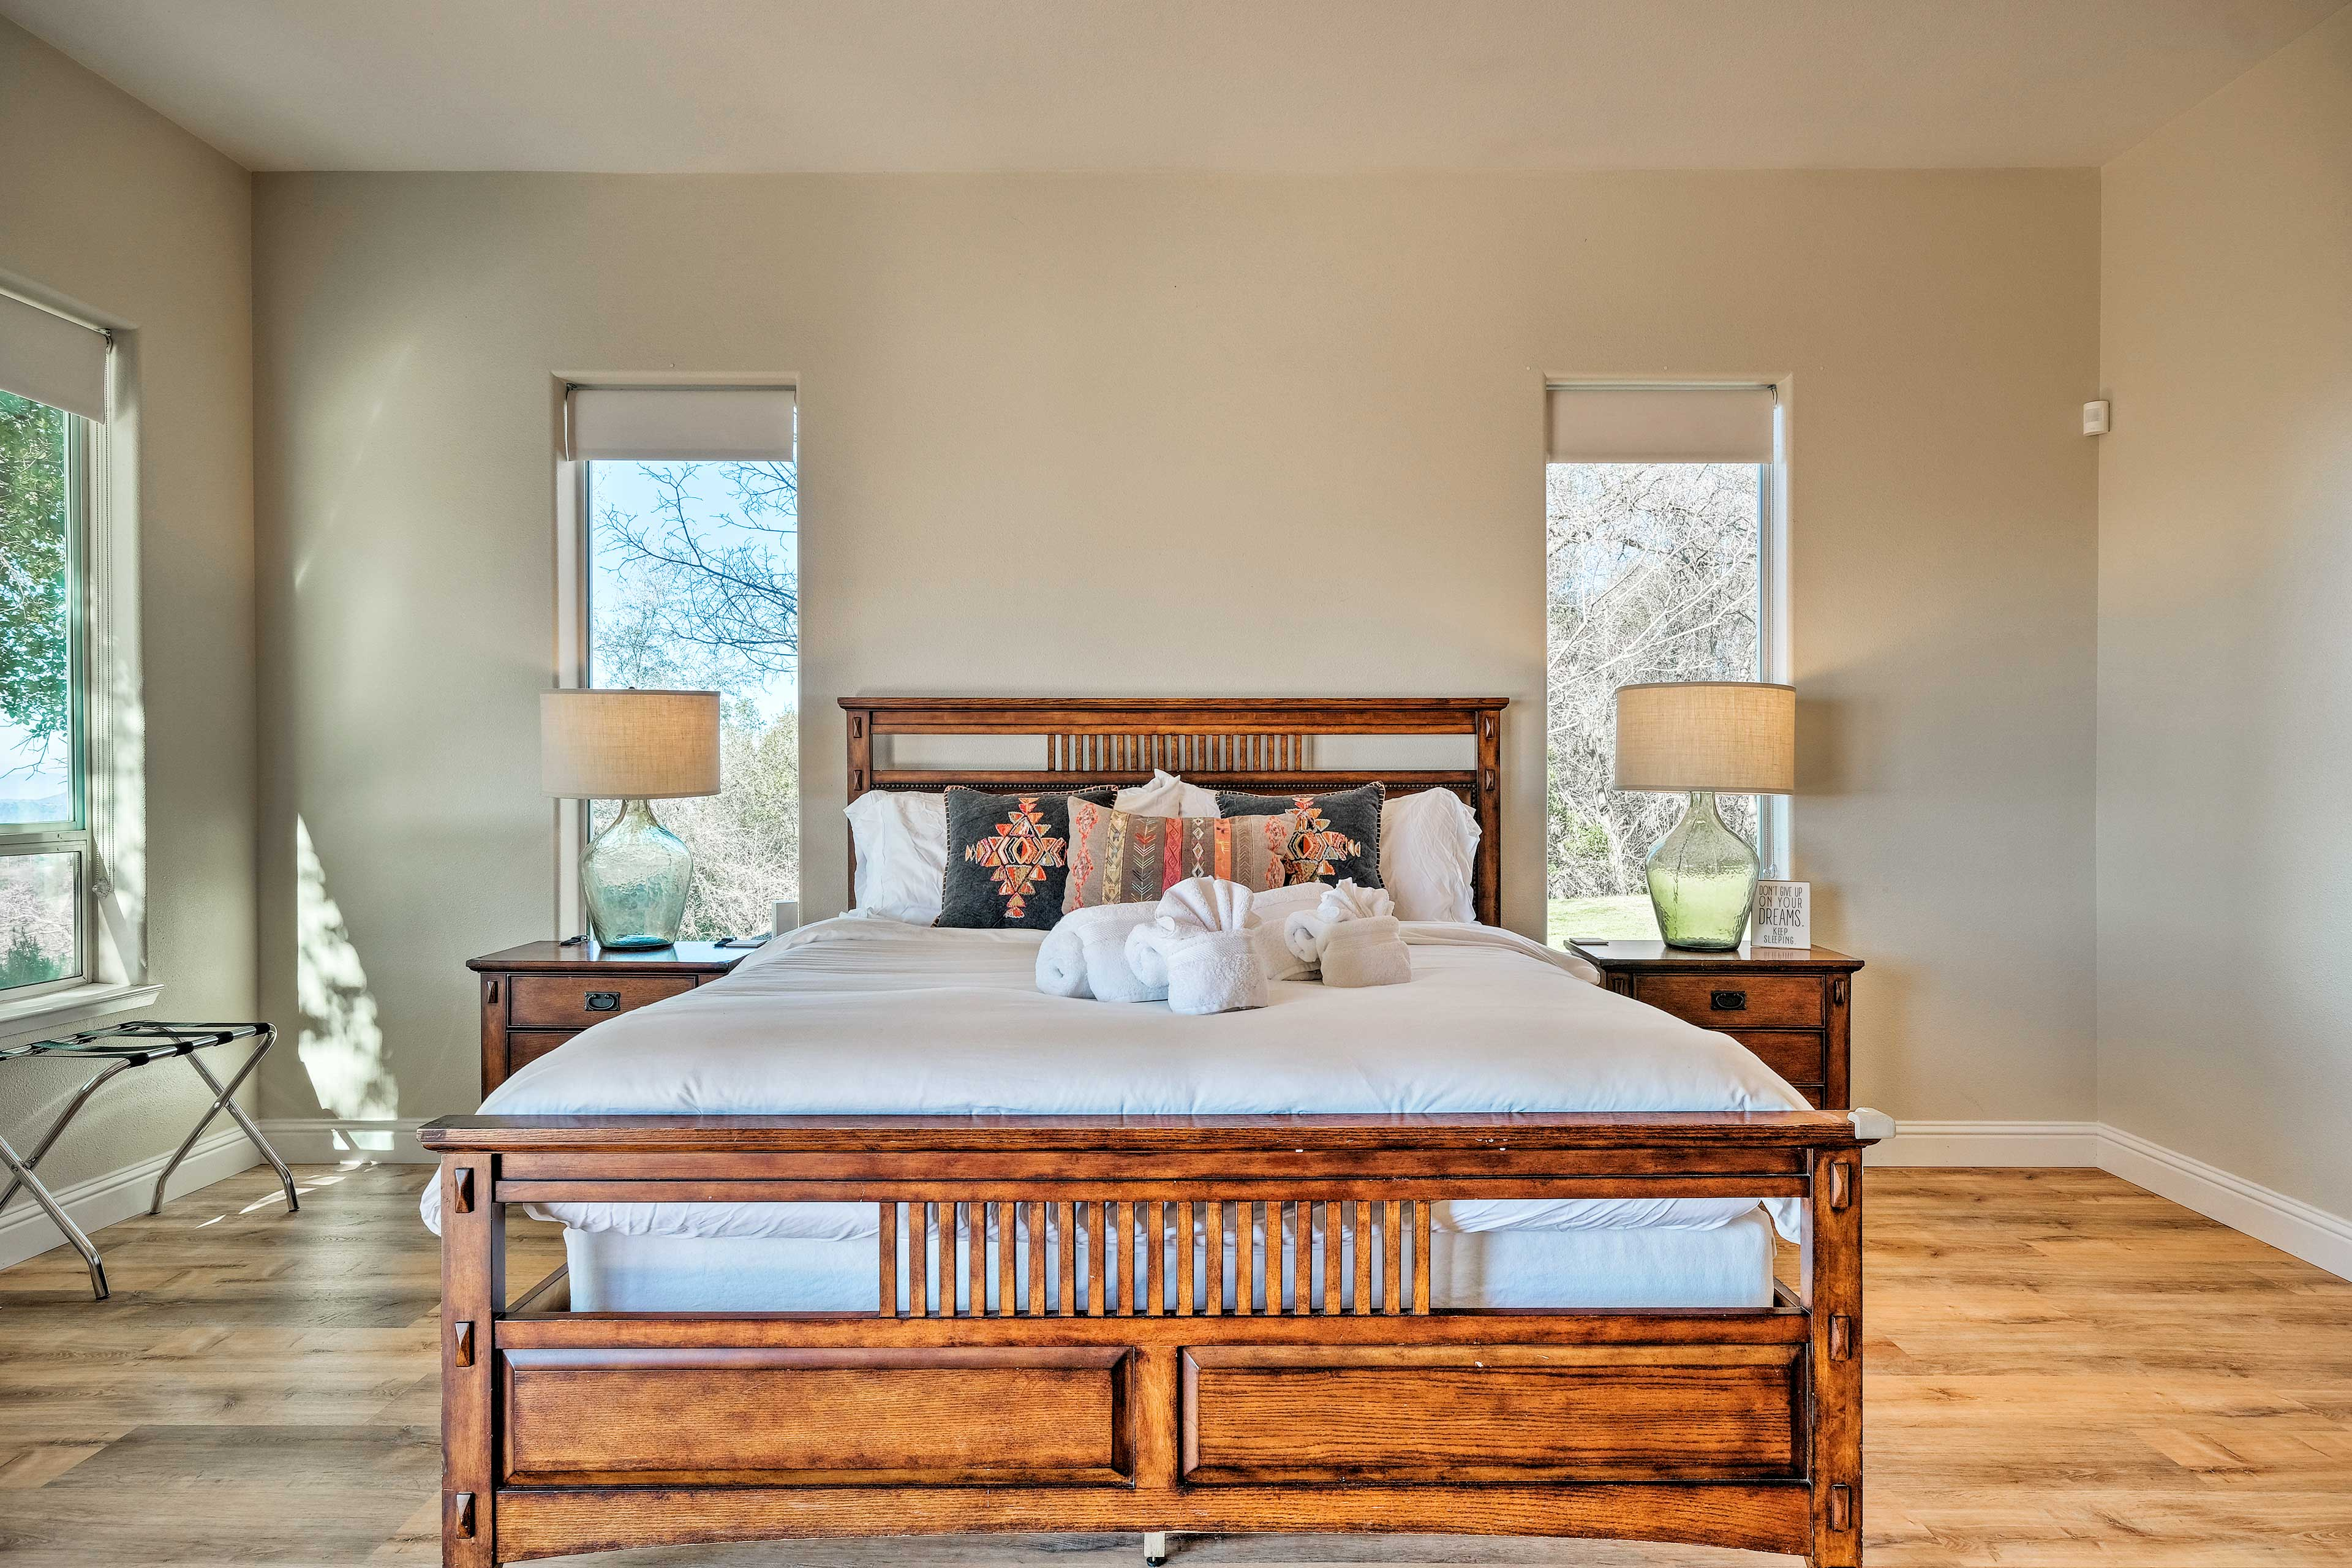 Claim the master bedroom as your own.